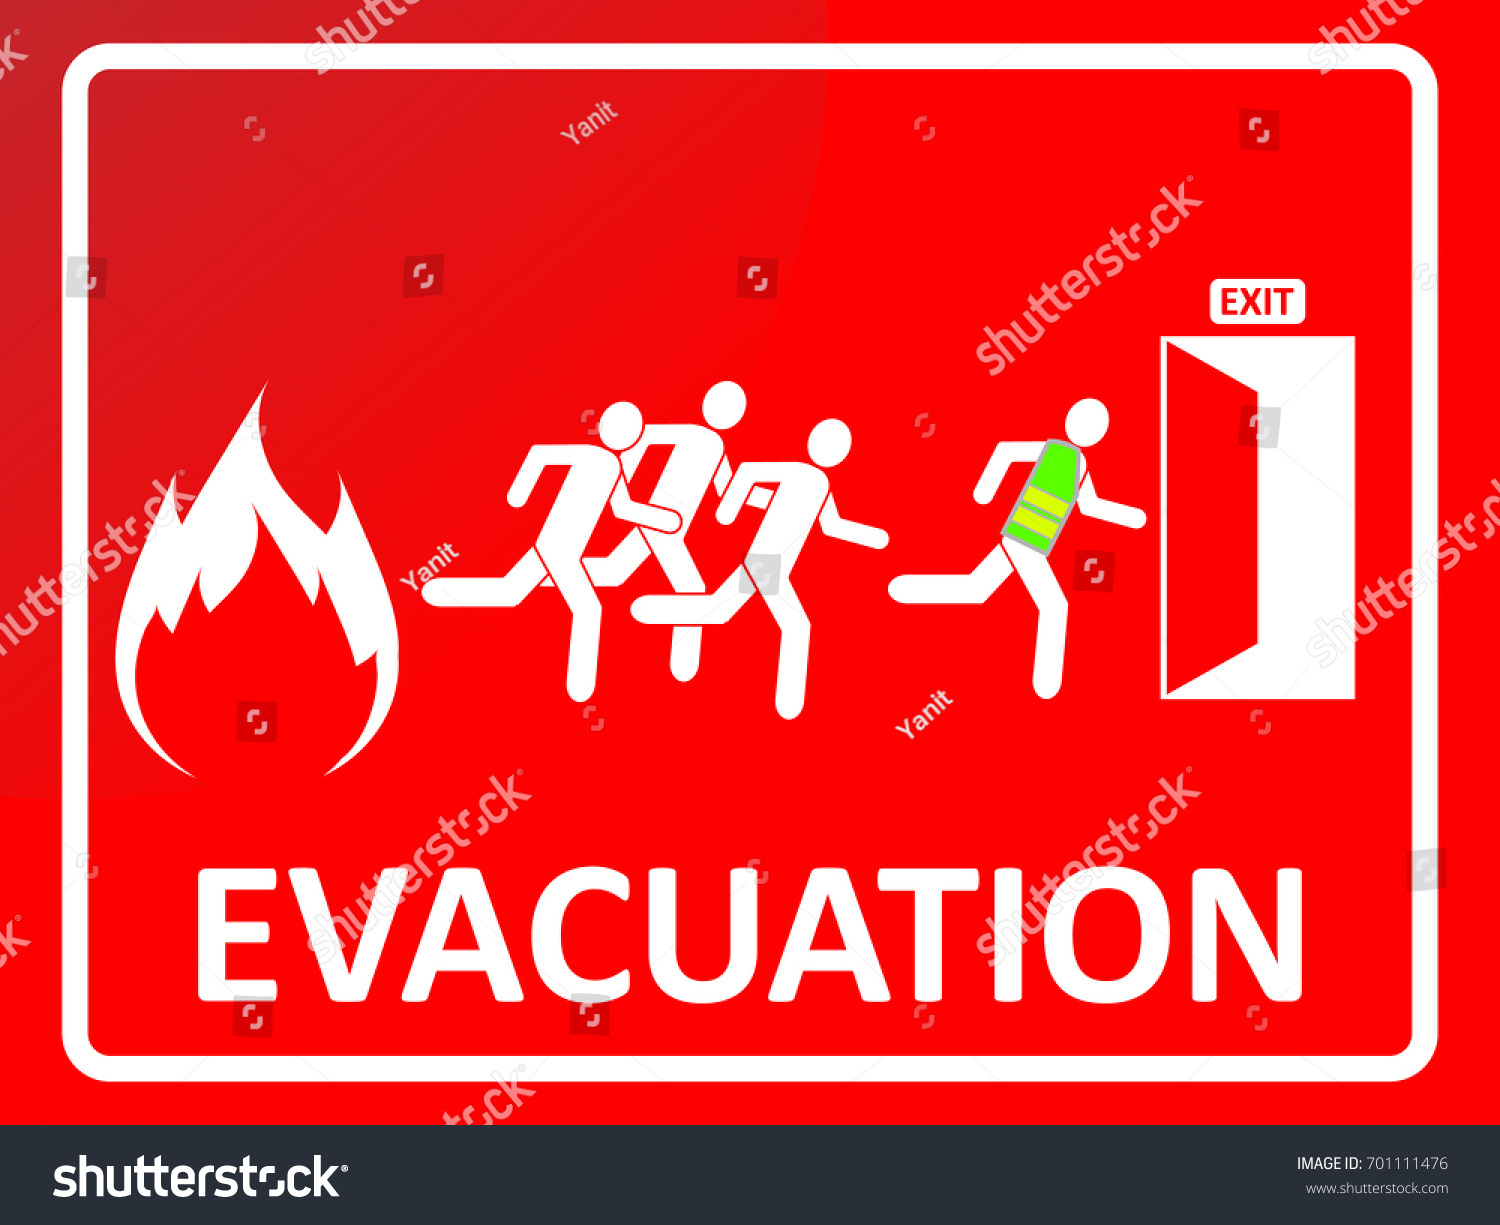 Emergency Evacuation Sign People Silhouette Running Stock Vector